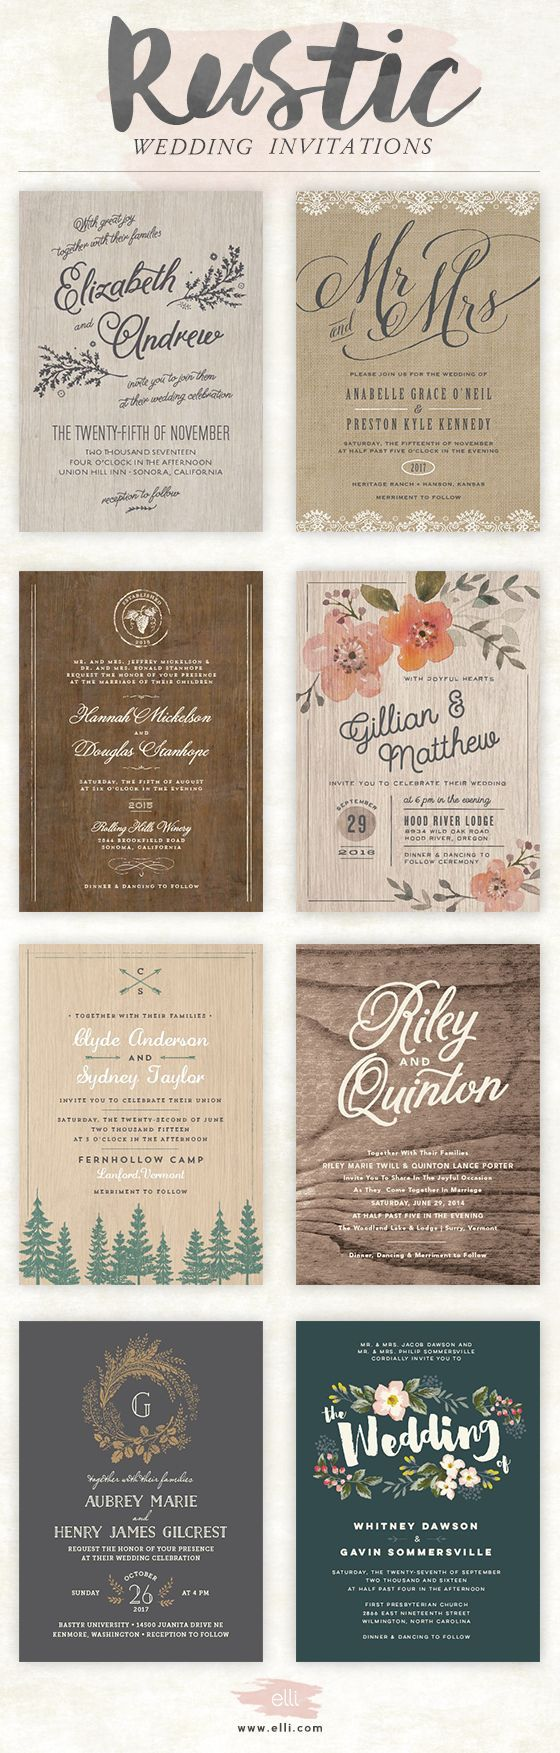 invitation letter for us vissample wedding%0A Rustic wedding invitations   bellacollina com   Bella Collina Weddings